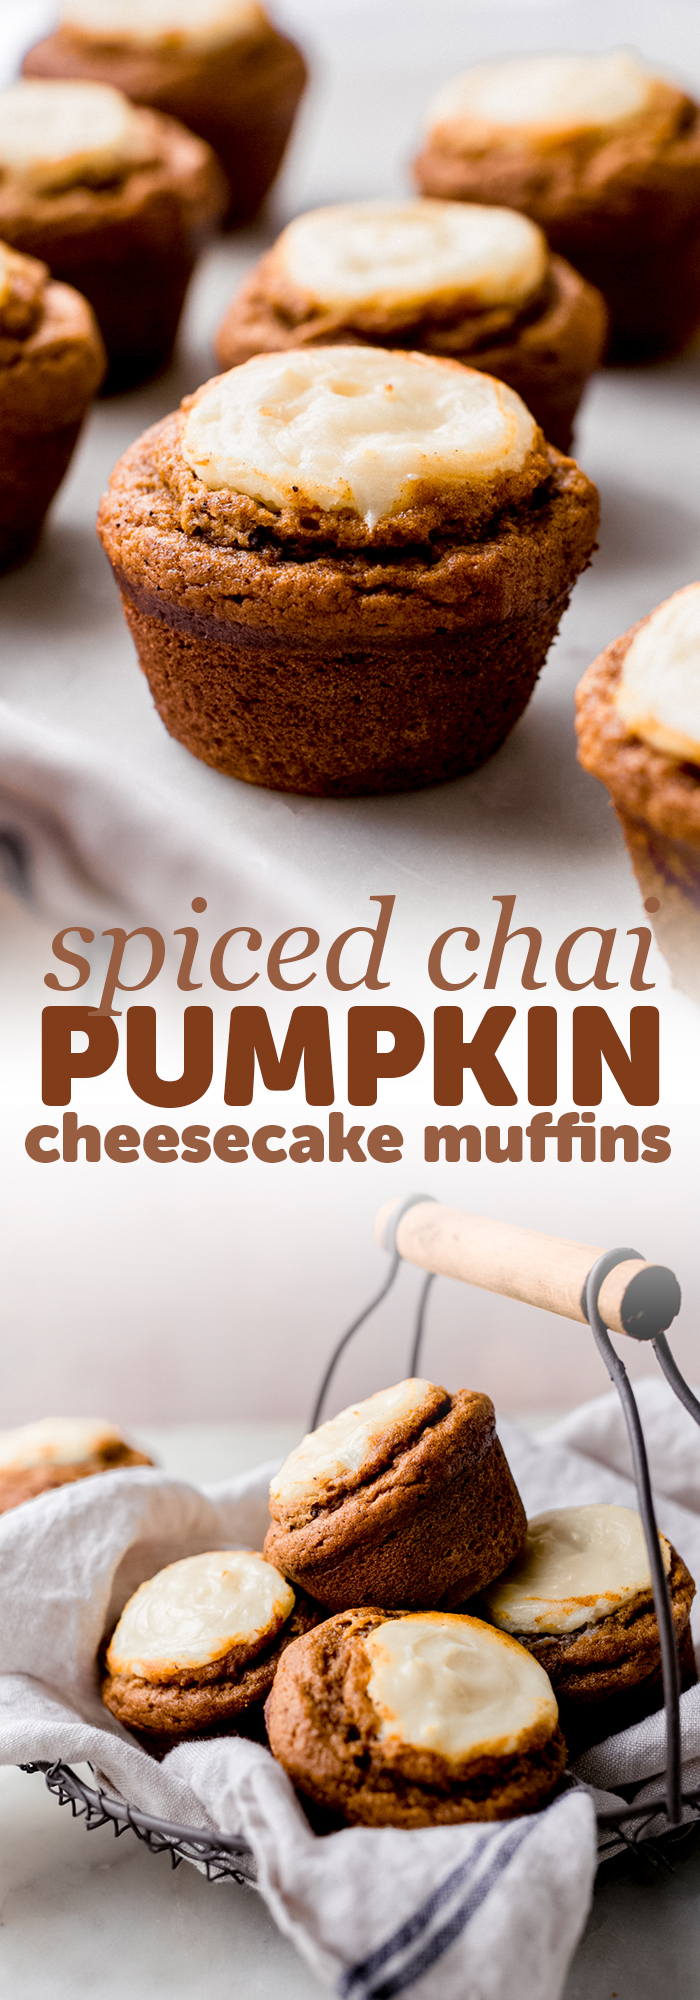 Spiced Chai Pumpkin Cheesecake Muffins - these are pumpkin muffins stuffed and topped with cheesecake batter! They're the perfect balance of sweet so they're perfect with a warm cup of coffee in the morning! #pumpkinmuffins #chai #pumpkincheesecakemuffins #spicedpumpkinmuffins #baking | Littlespicejar.com